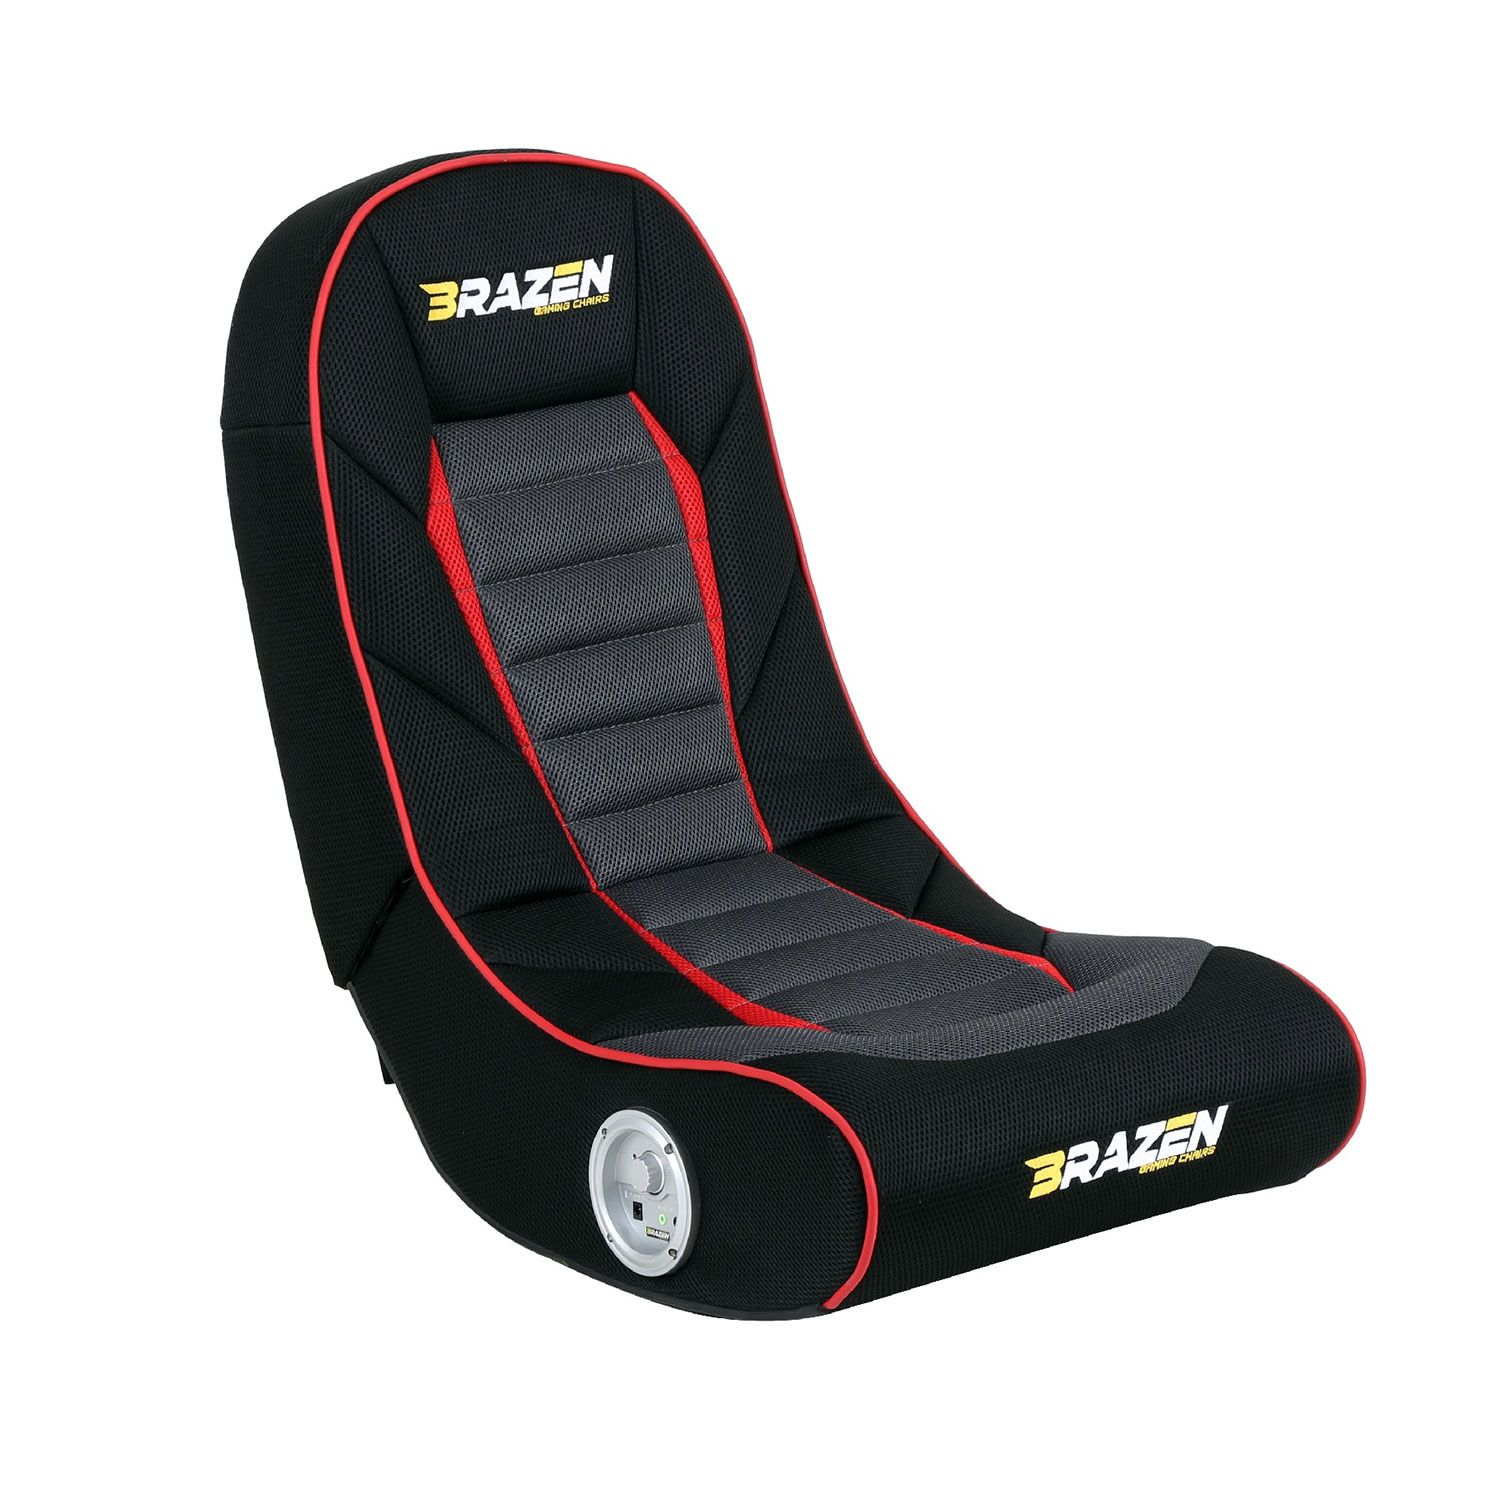 Floor Rocker Gaming Chairs Available at BoysStuff